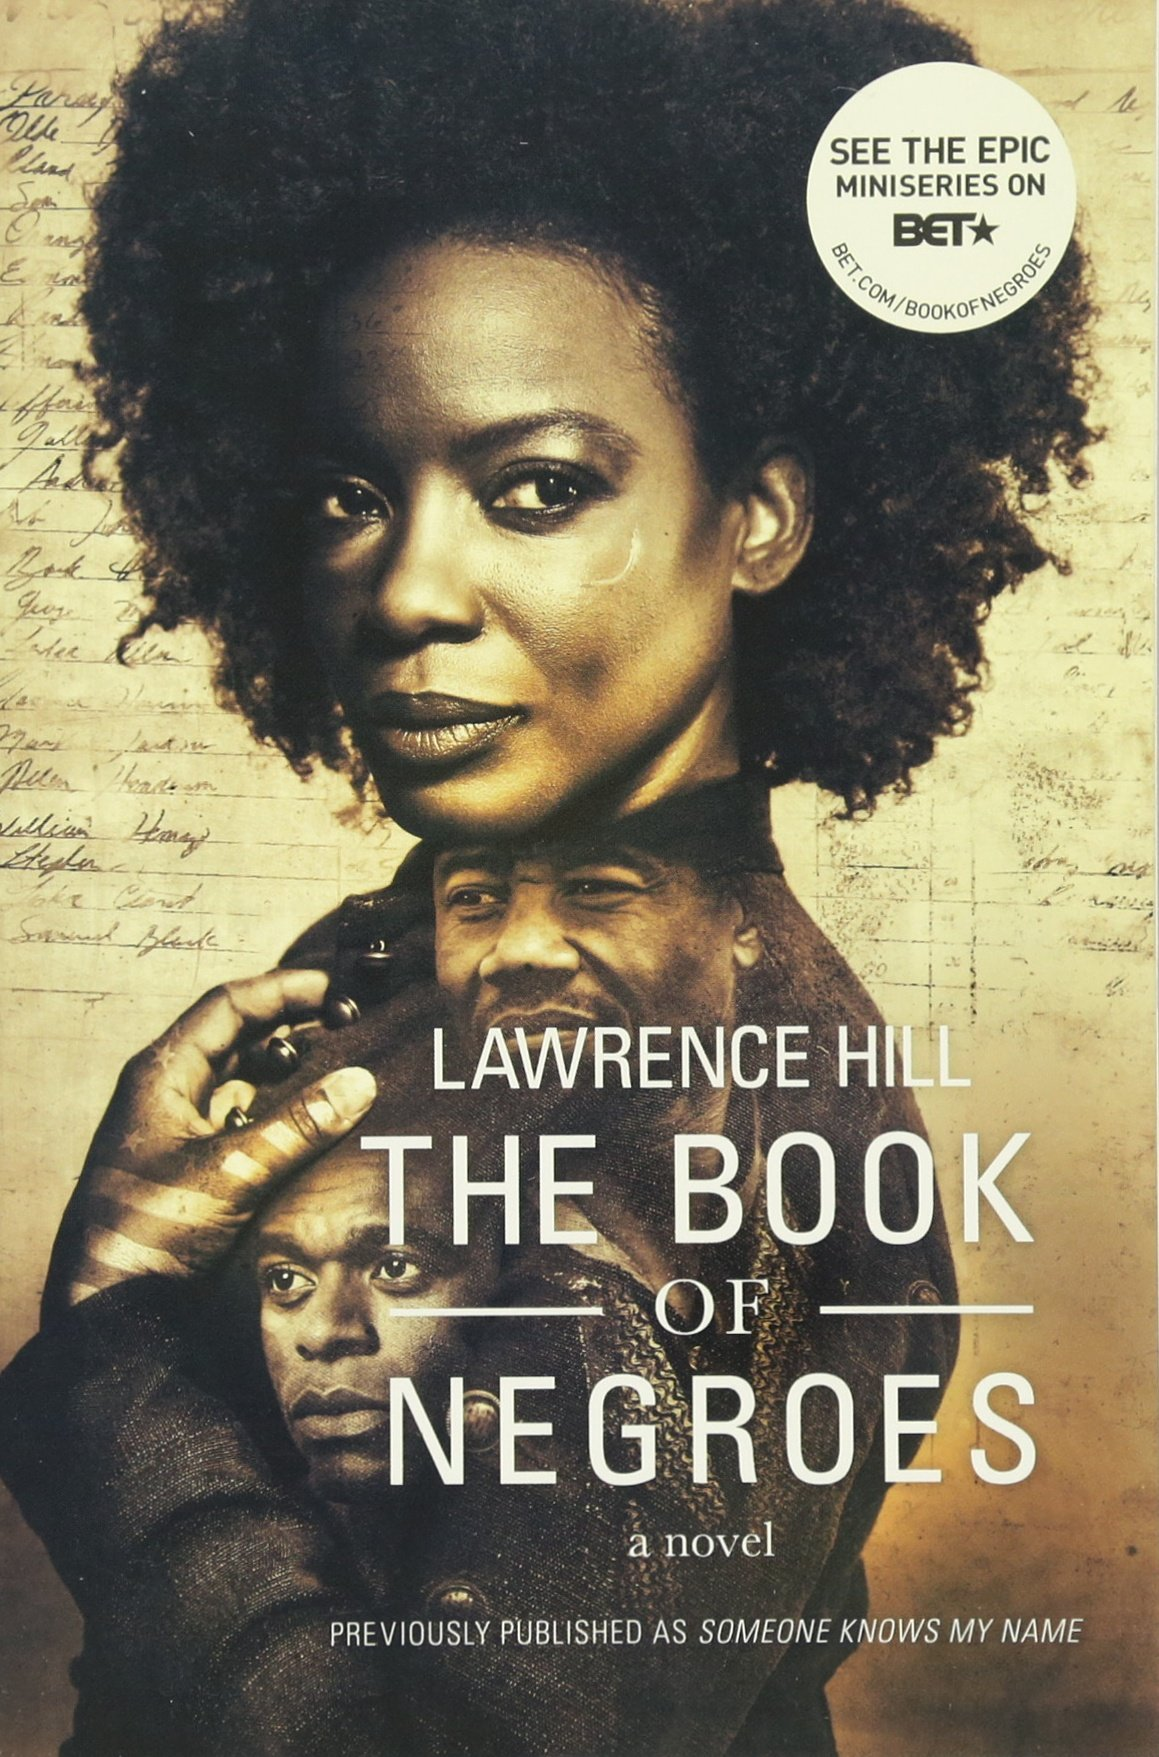 Download image 1700s woman portrait pc android iphone and ipad - Amazon Com The Book Of Negroes A Novel Movie Tie In Edition Movie Tie In Editions 9780393351392 Lawrence Hill Books